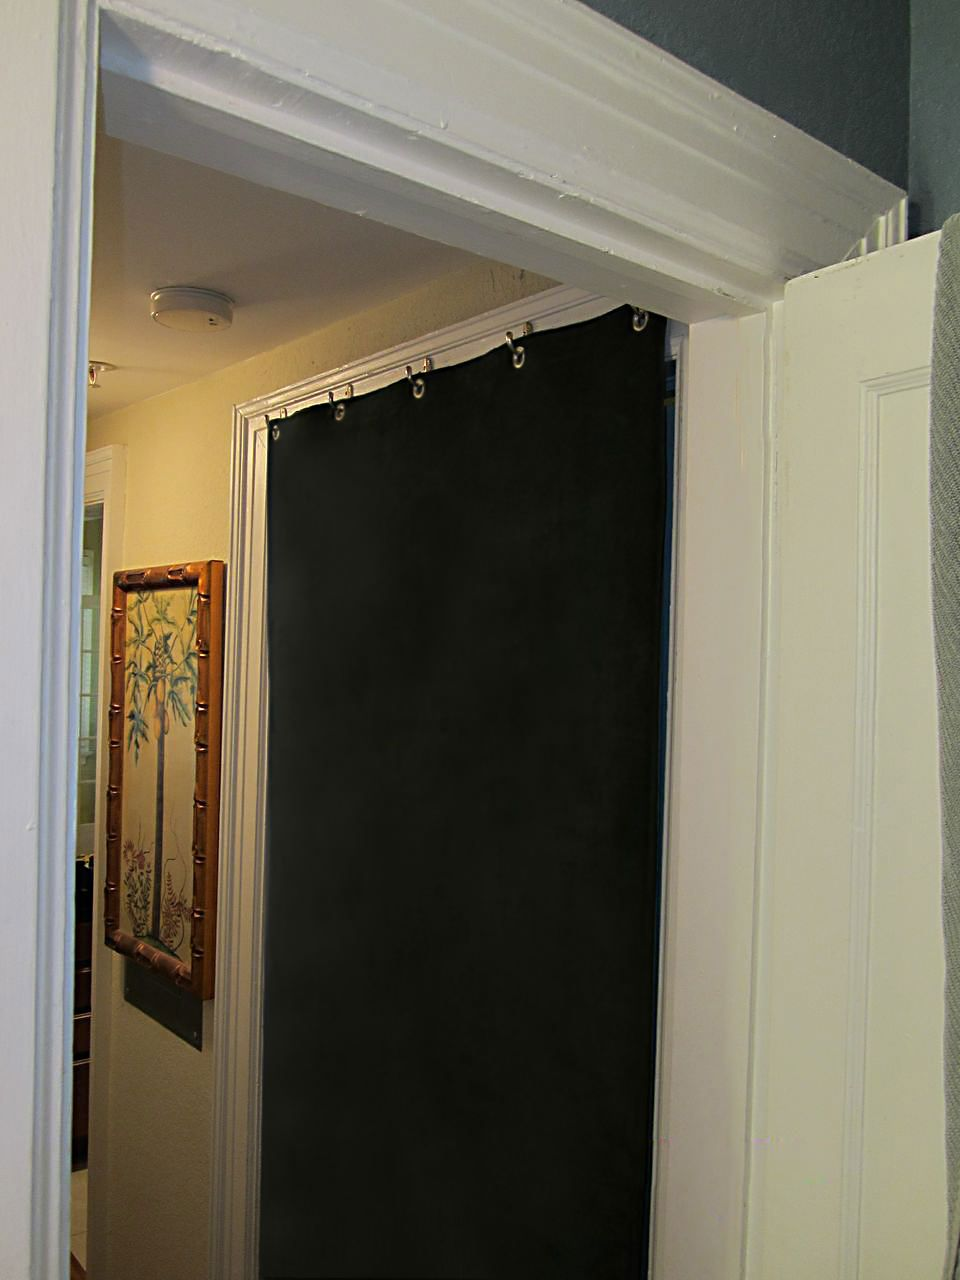 The Acoustidoor Soundproofing Door Cover Residential Acoustics Sound Proofing Door Sound Proofing Home